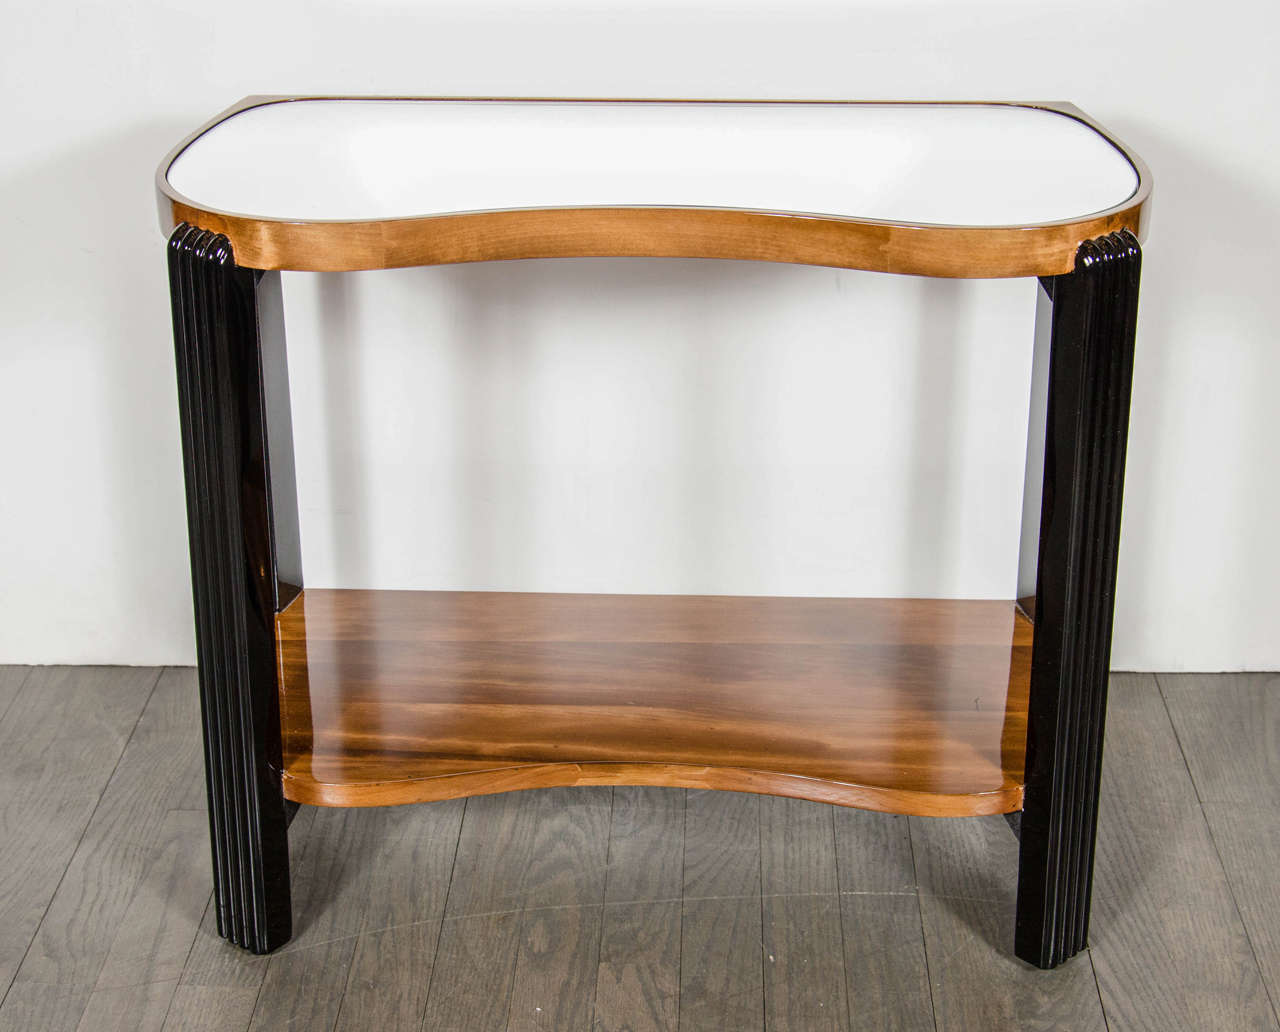 Art Deco Machine Age Side Table with Streamline Reeded Leg Design 3